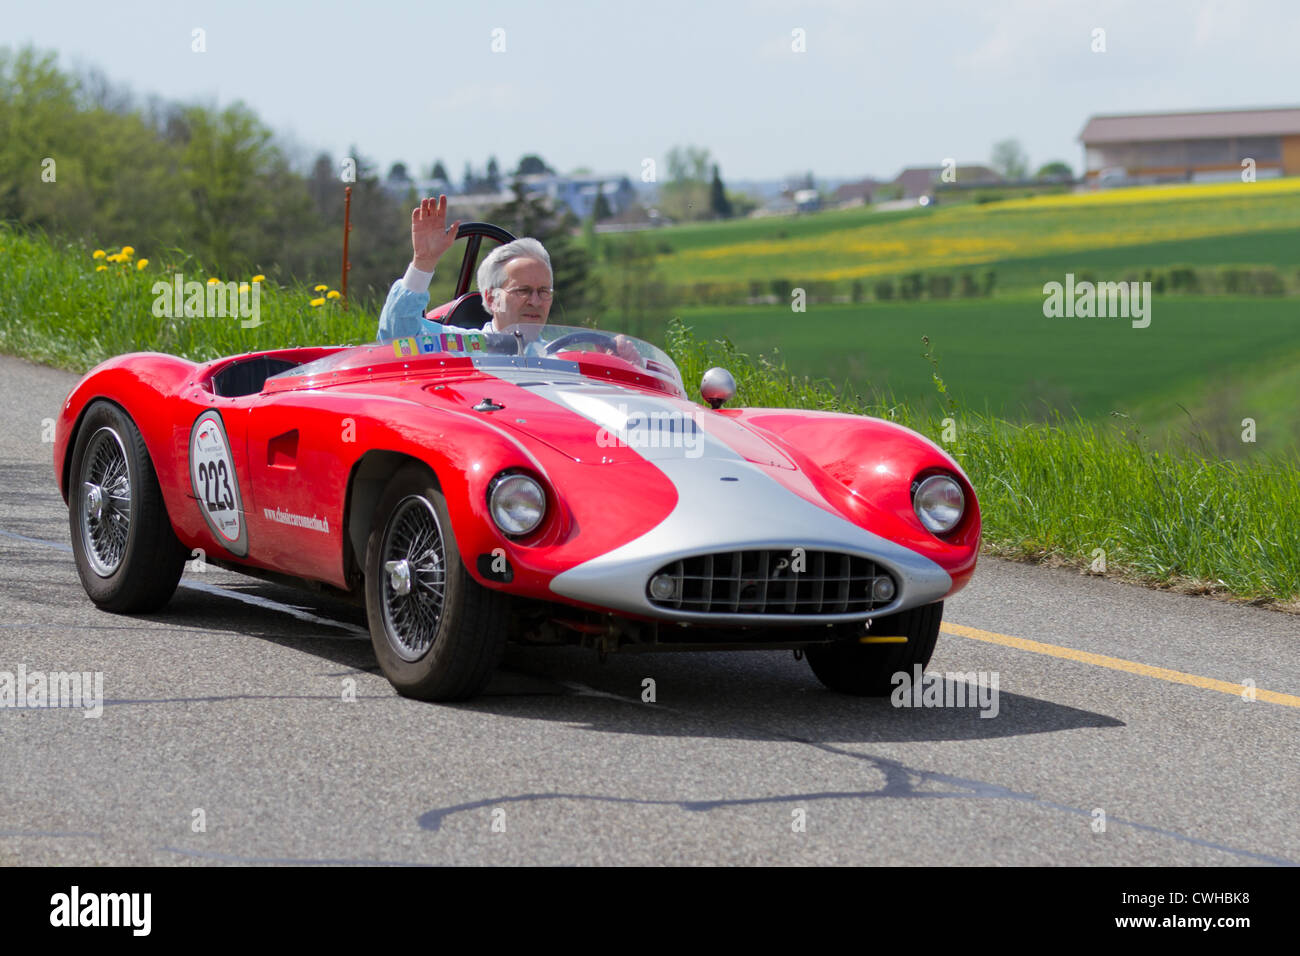 Vintage race touring car Devin TR from 1957 at Grand Prix in Mutschellen, SUI on April 29, 2012. - Stock Image